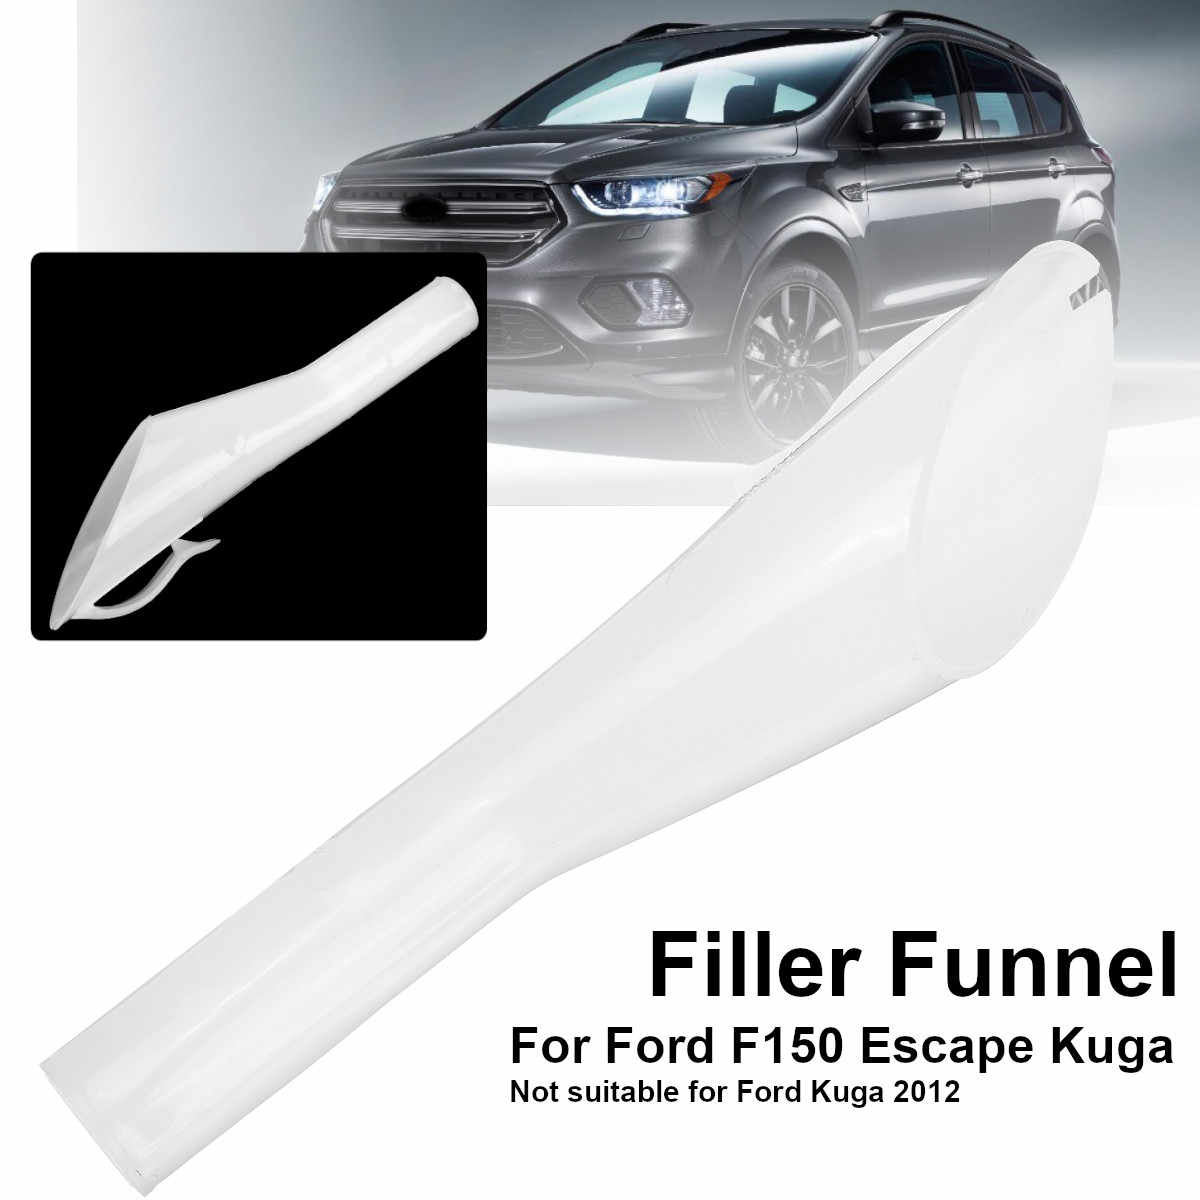 medium resolution of car petrol oil filler funnel fuel refueling tool car fuel filters for ford escape for kuga